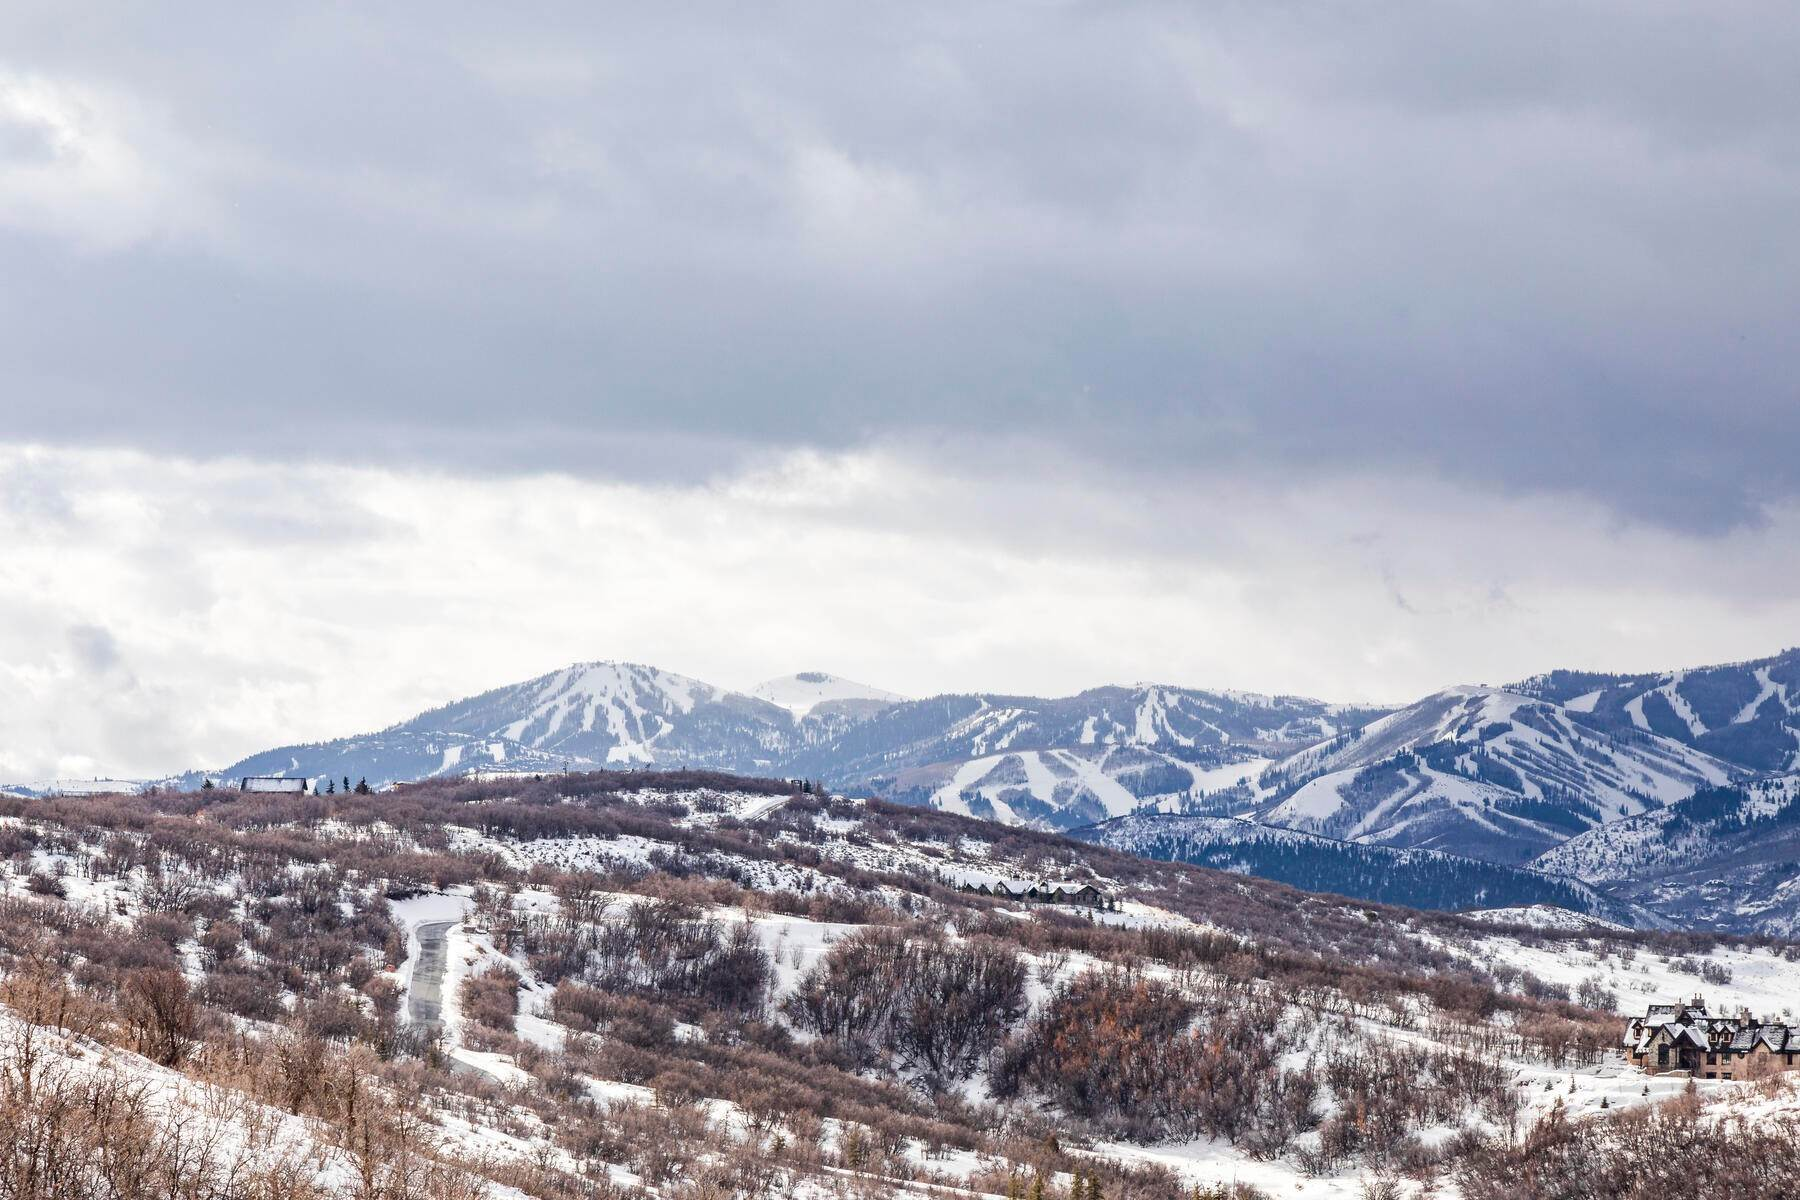 Land for Sale at Views and Privacy Accentuate This 25 Acre Equestrian Lot 1950 W Red Hawk Trail Park City, Utah 84098 United States